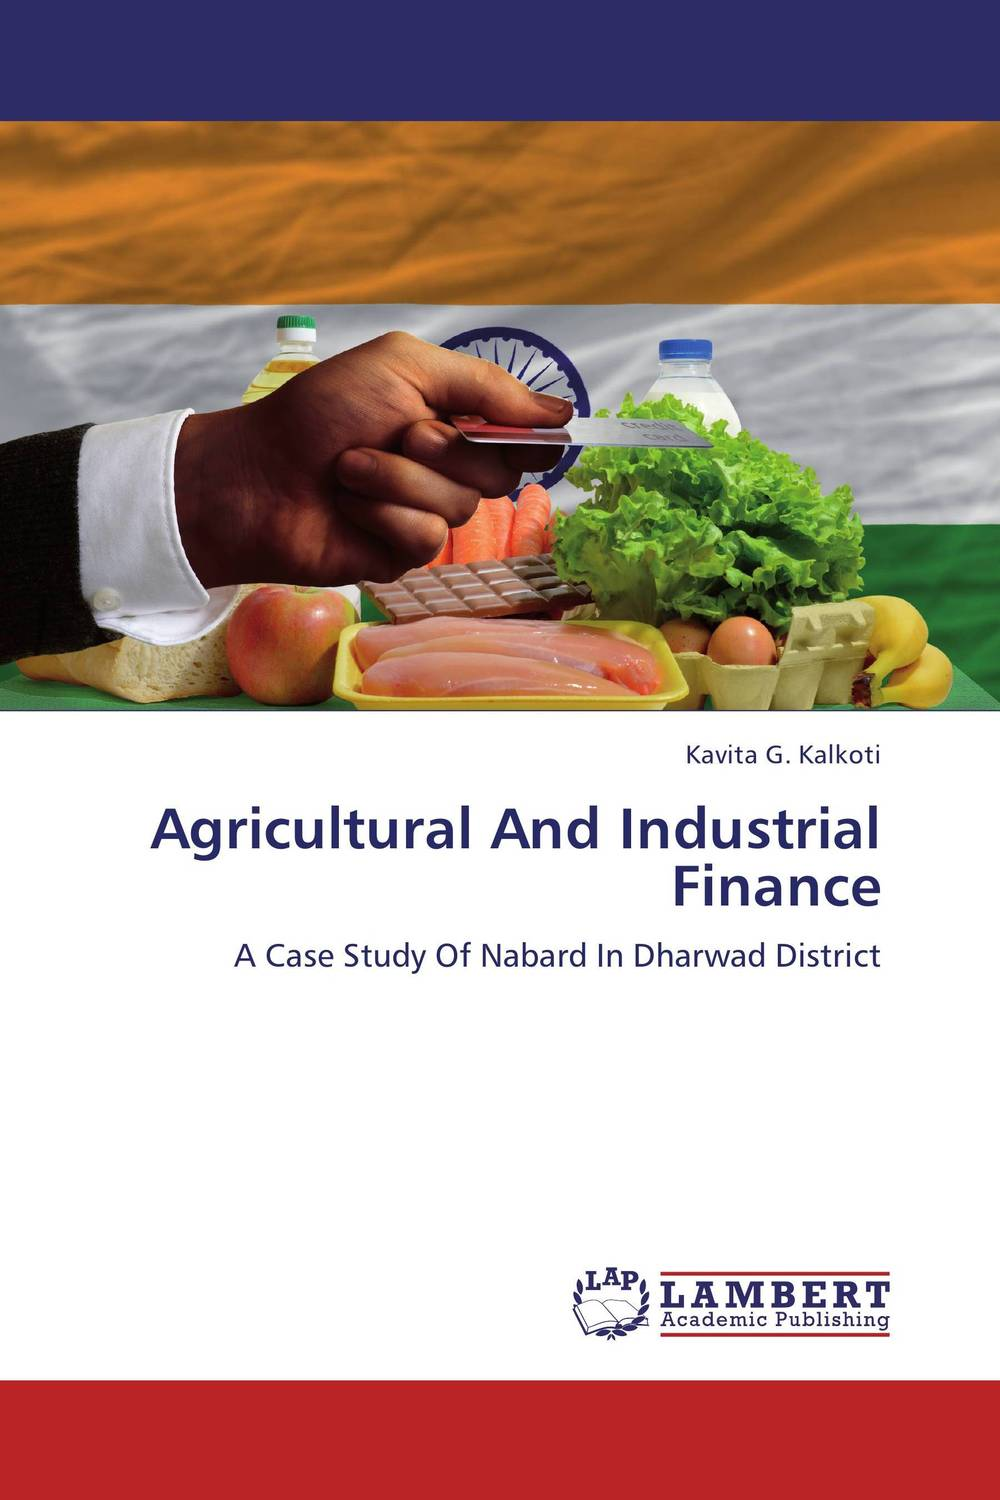 Agricultural And Industrial Finance